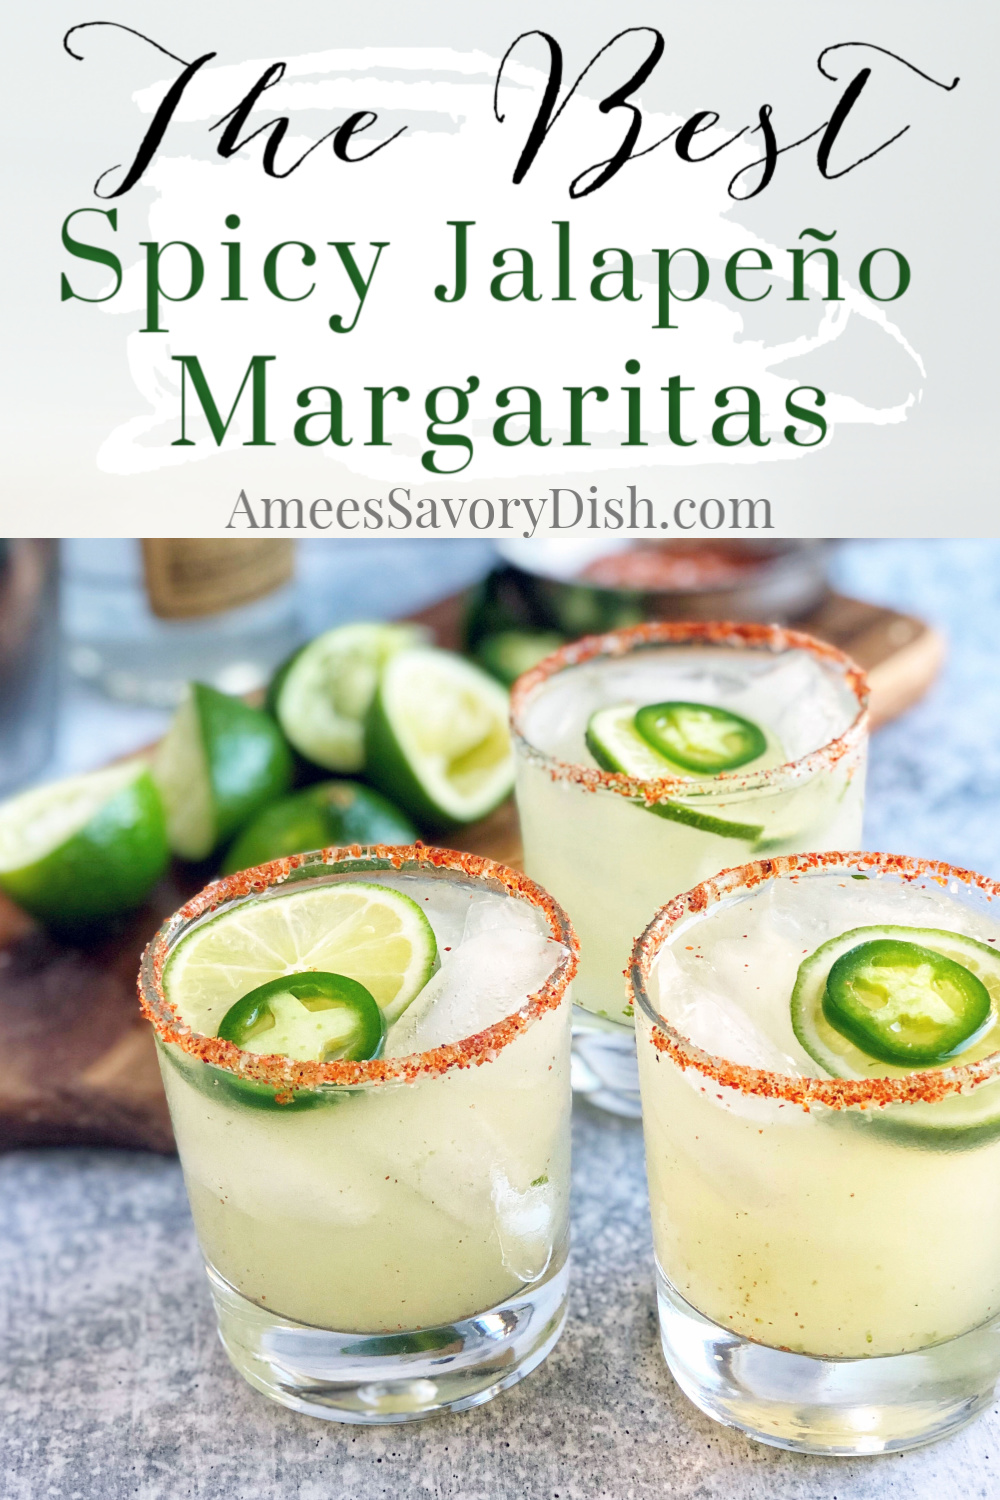 This recipe for spicy jalapeño margaritas is the perfect blend of sweet, tart, and heat with a touch of fizz for a refreshing and flavorful cocktail.#cocktailrecipe #cocktails #margaritas #margaritarecipe #spicymargaritas #jalapeñomargaritas via @Ameecooks